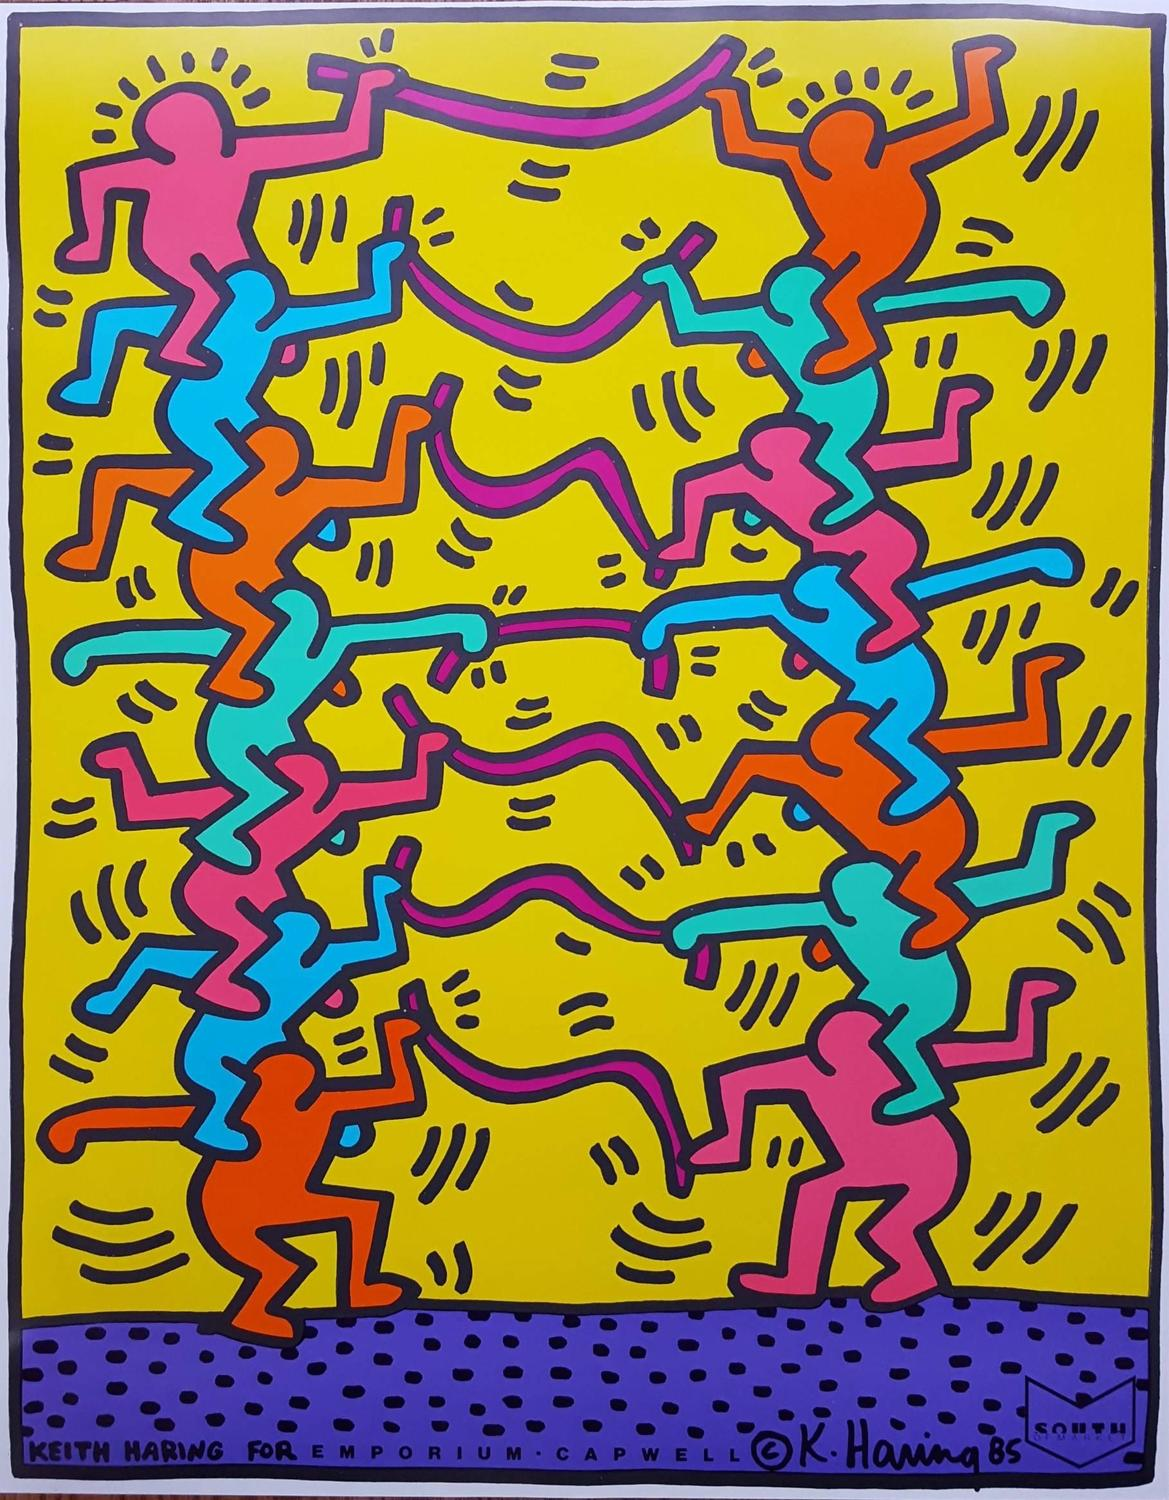 Keith Haring - Keith Haring for Emporium Capwell, Print at 1stdibs